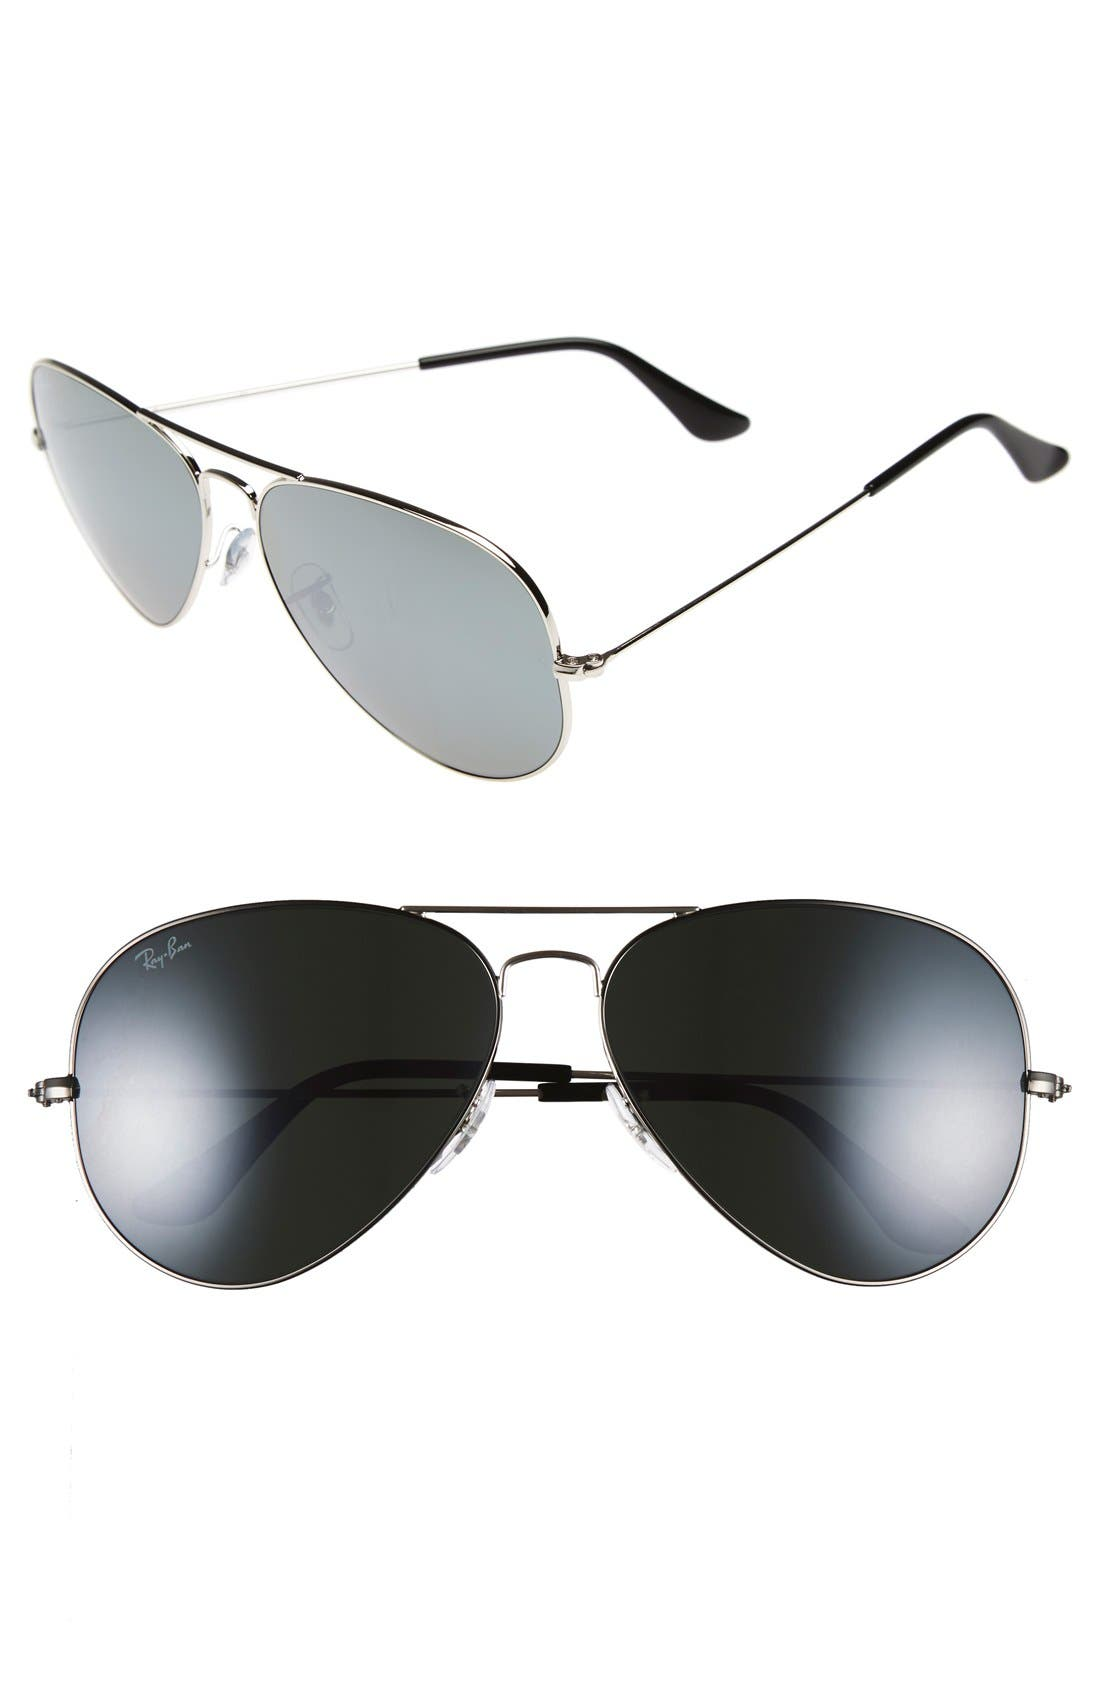 Ray-Ban 62Mm Aviator Sunglasses -